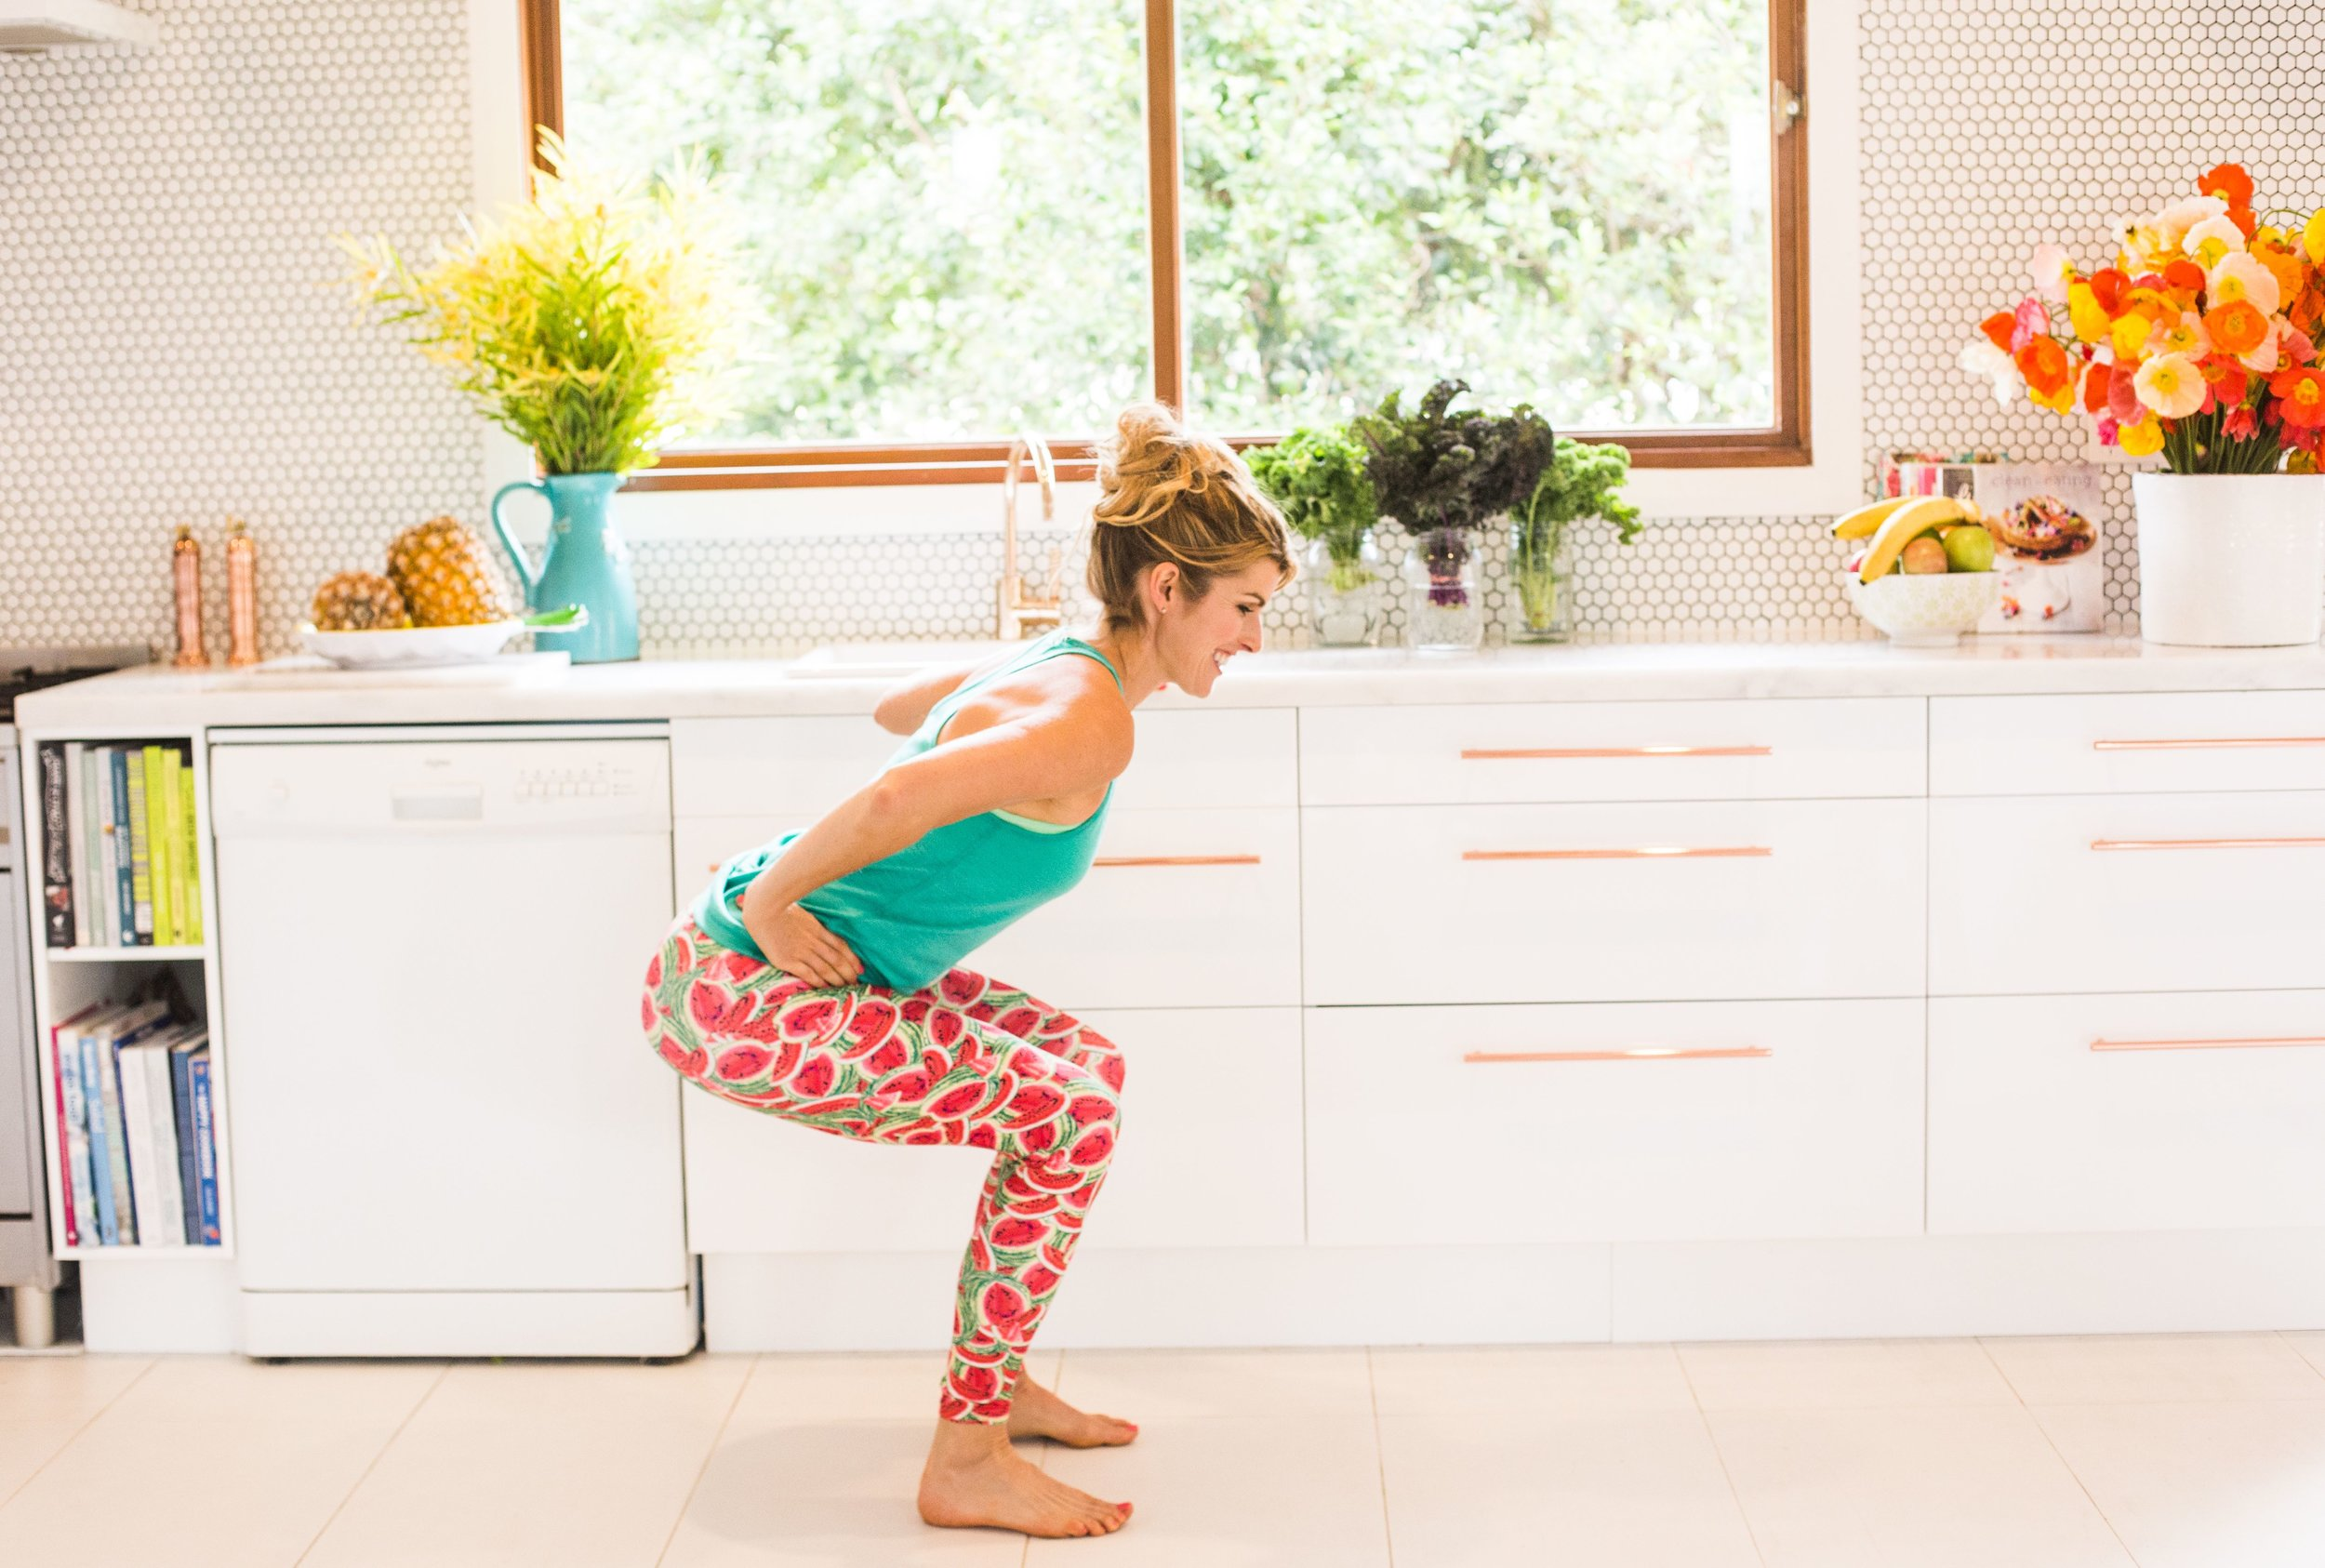 Squats at the kitchen counter.